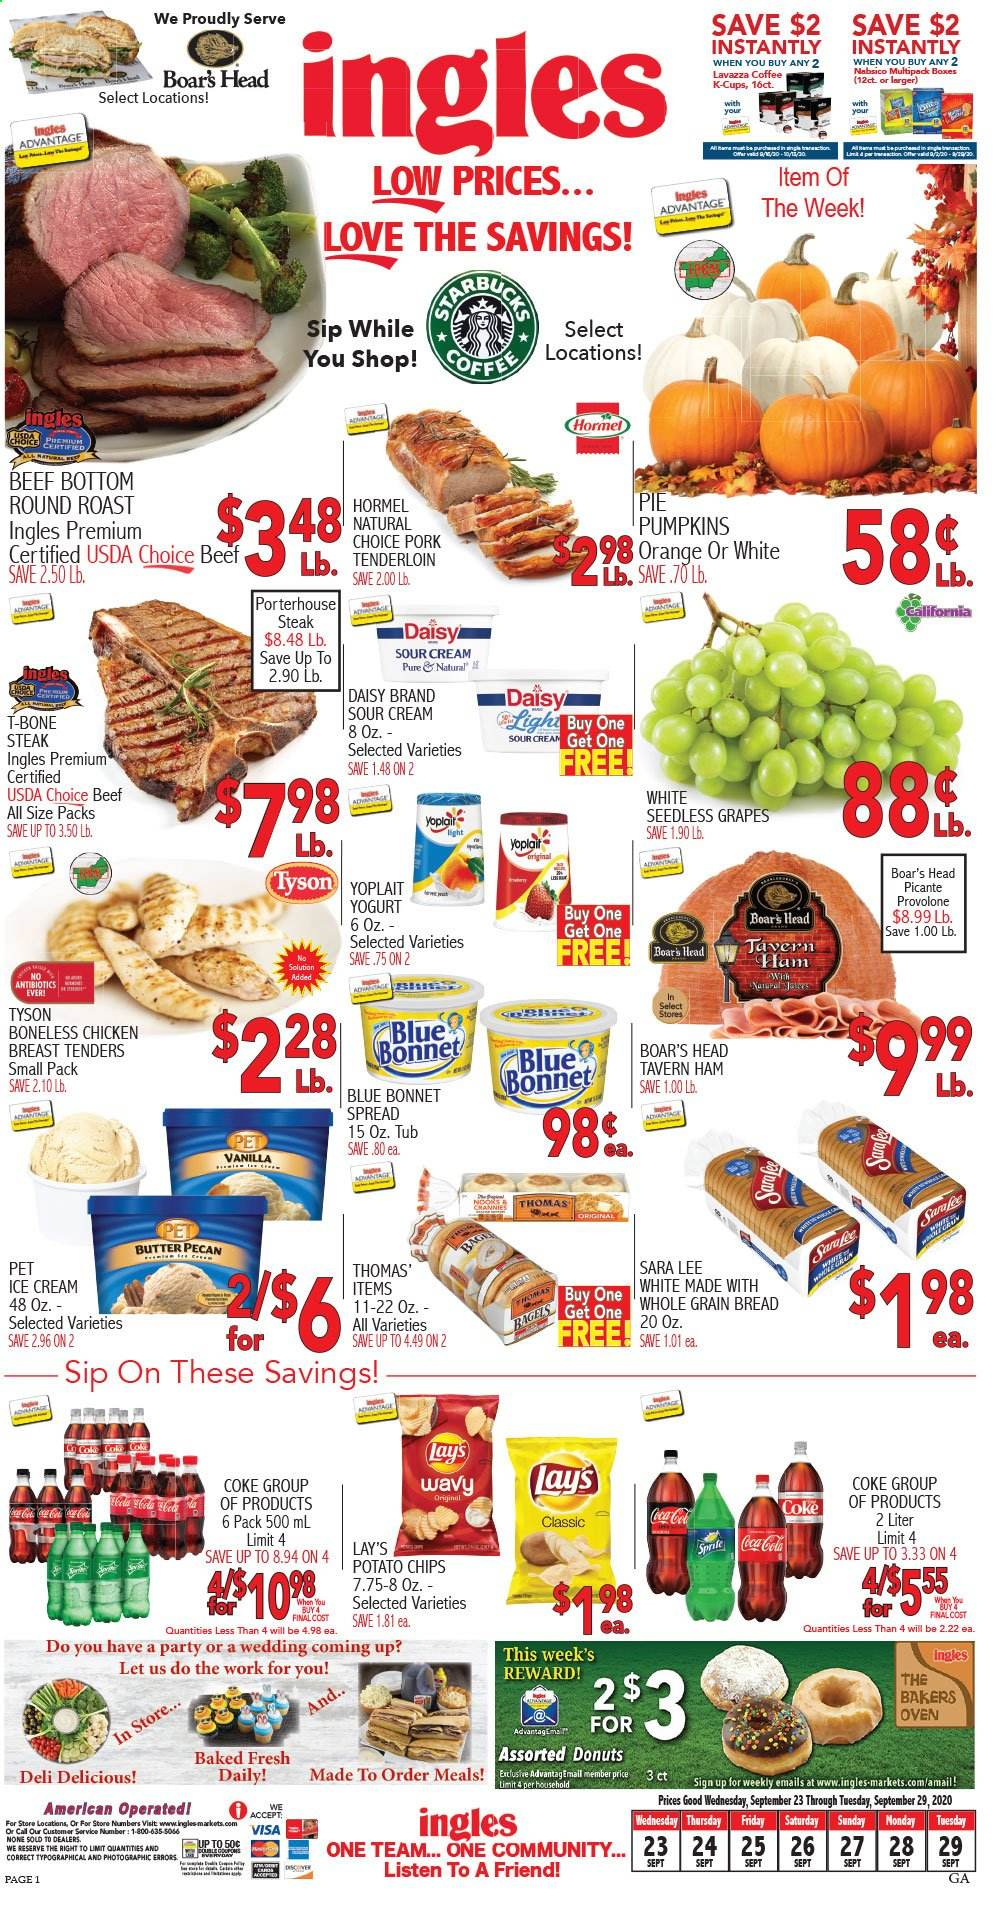 Ingles Flyer - 09.23.2020 - 09.29.2020 - Sales products - beef meat, bottom, box, bread, butter, coca-cola, coffee, grapes, seedless grapes, sour cream, sprite, t-bone steak, yogurt, ham, head, ice cream, pork meat, provolone, chicken, chicken breast, oven, orange, steak, tenderloin, pie, donuts, lee, lay's, tub, roast, donut, led. Page 1.